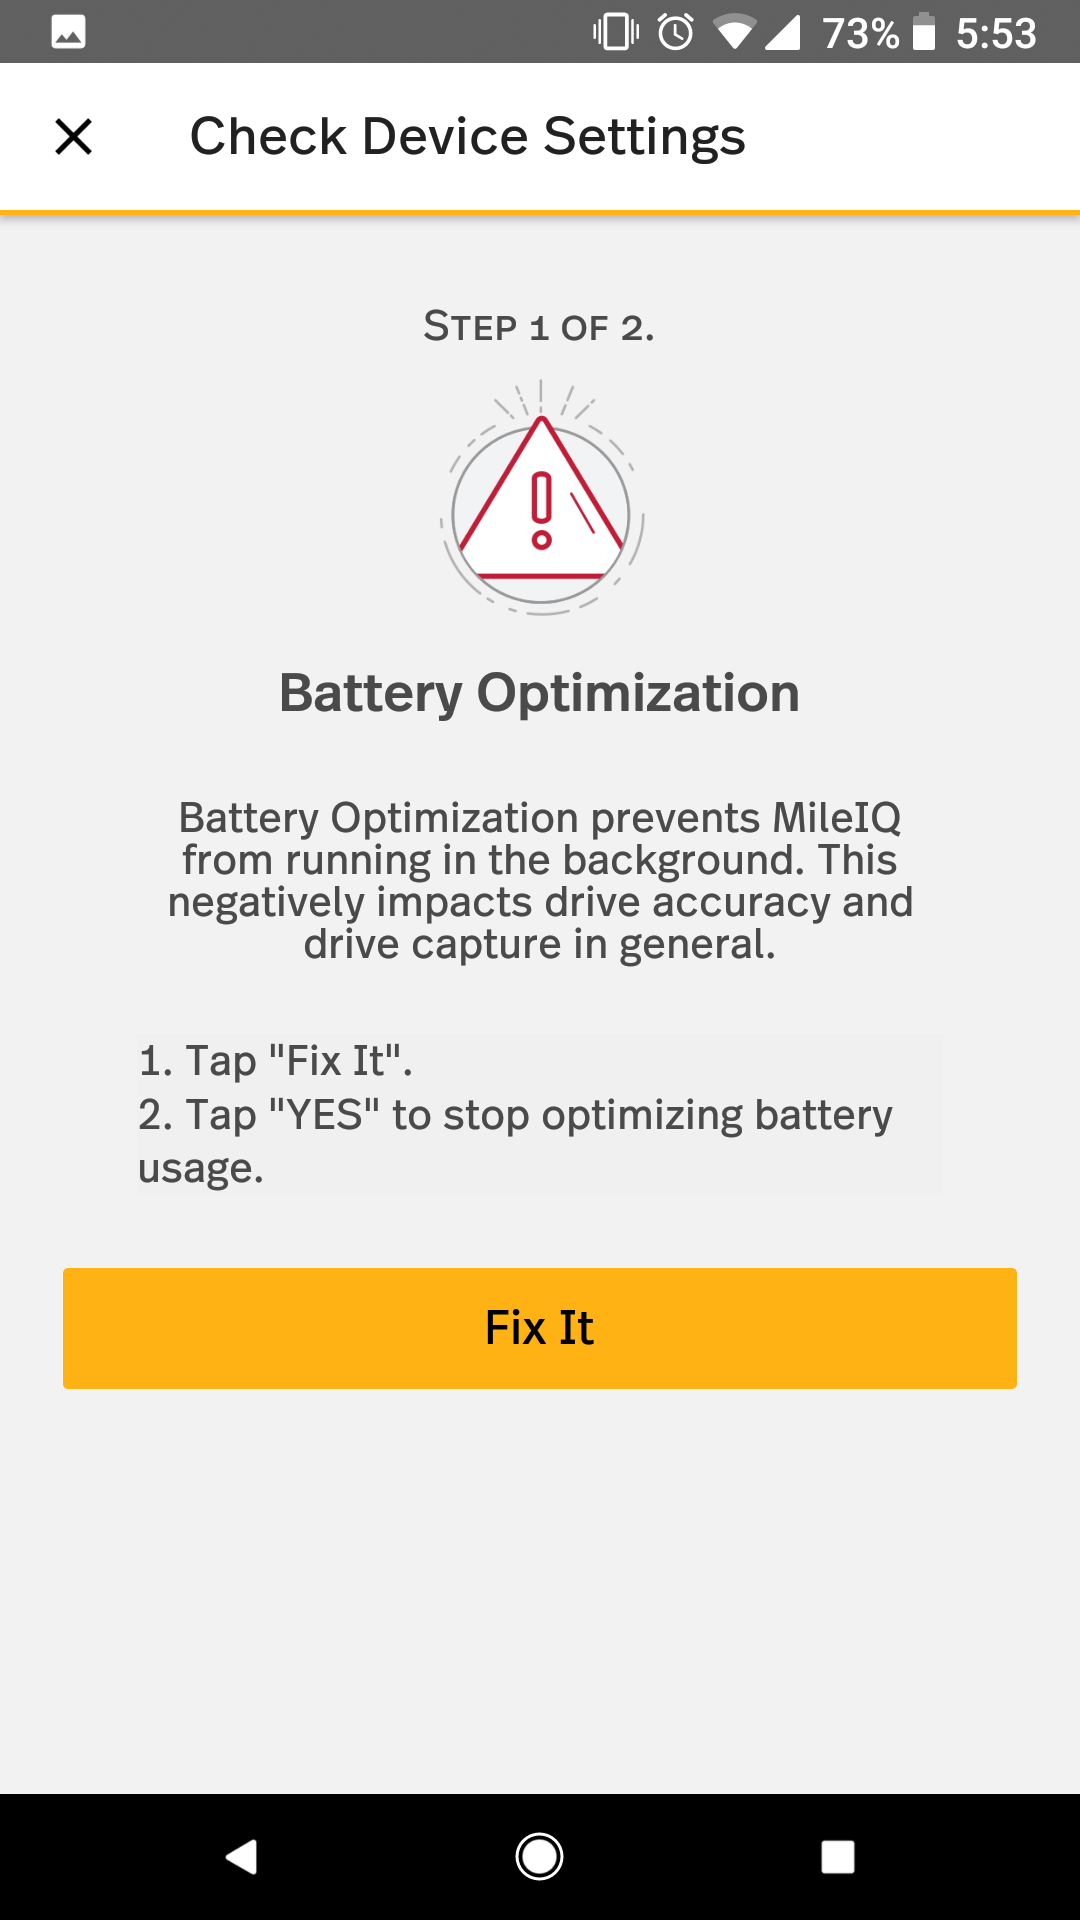 This shows the steps to allow MileIQ to operate with being Battery Optimized